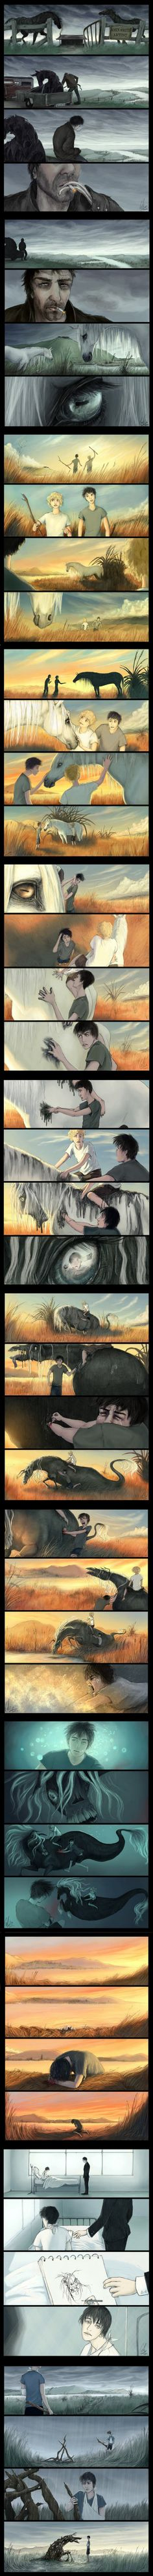 love this comic ... Kelpies: Scottish death horses